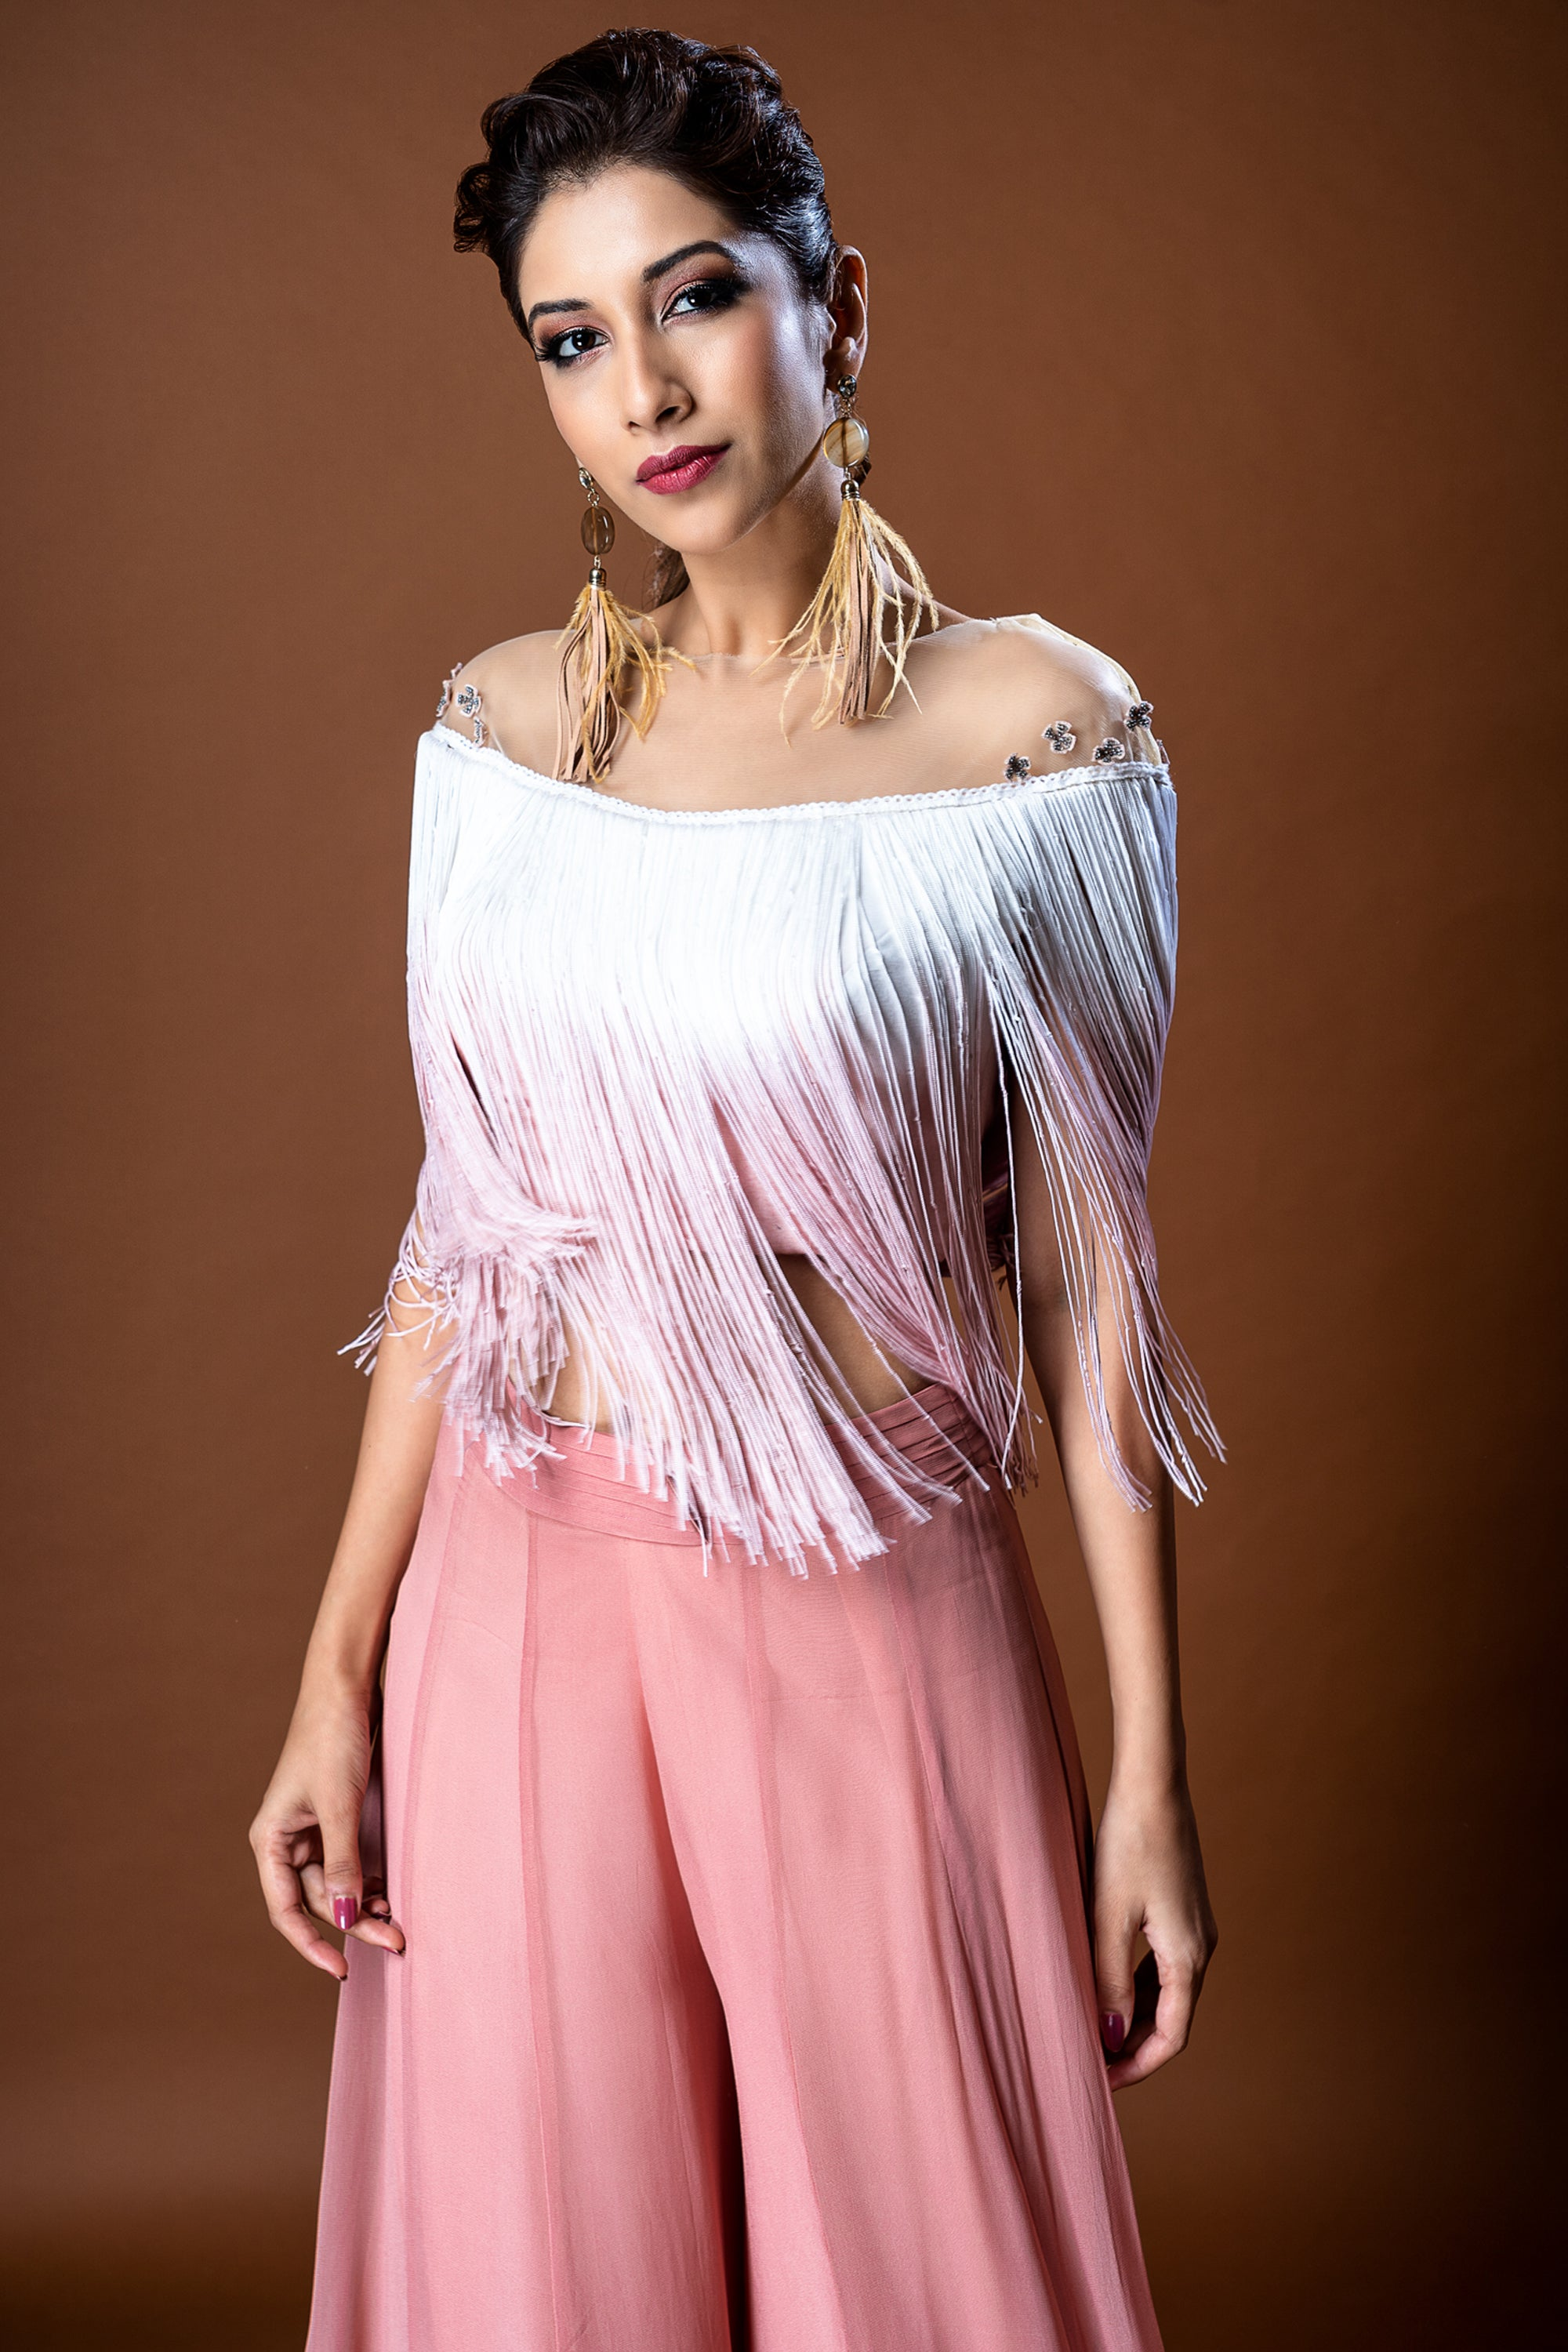 Nude To White Shaded Fringe Top CLOSE